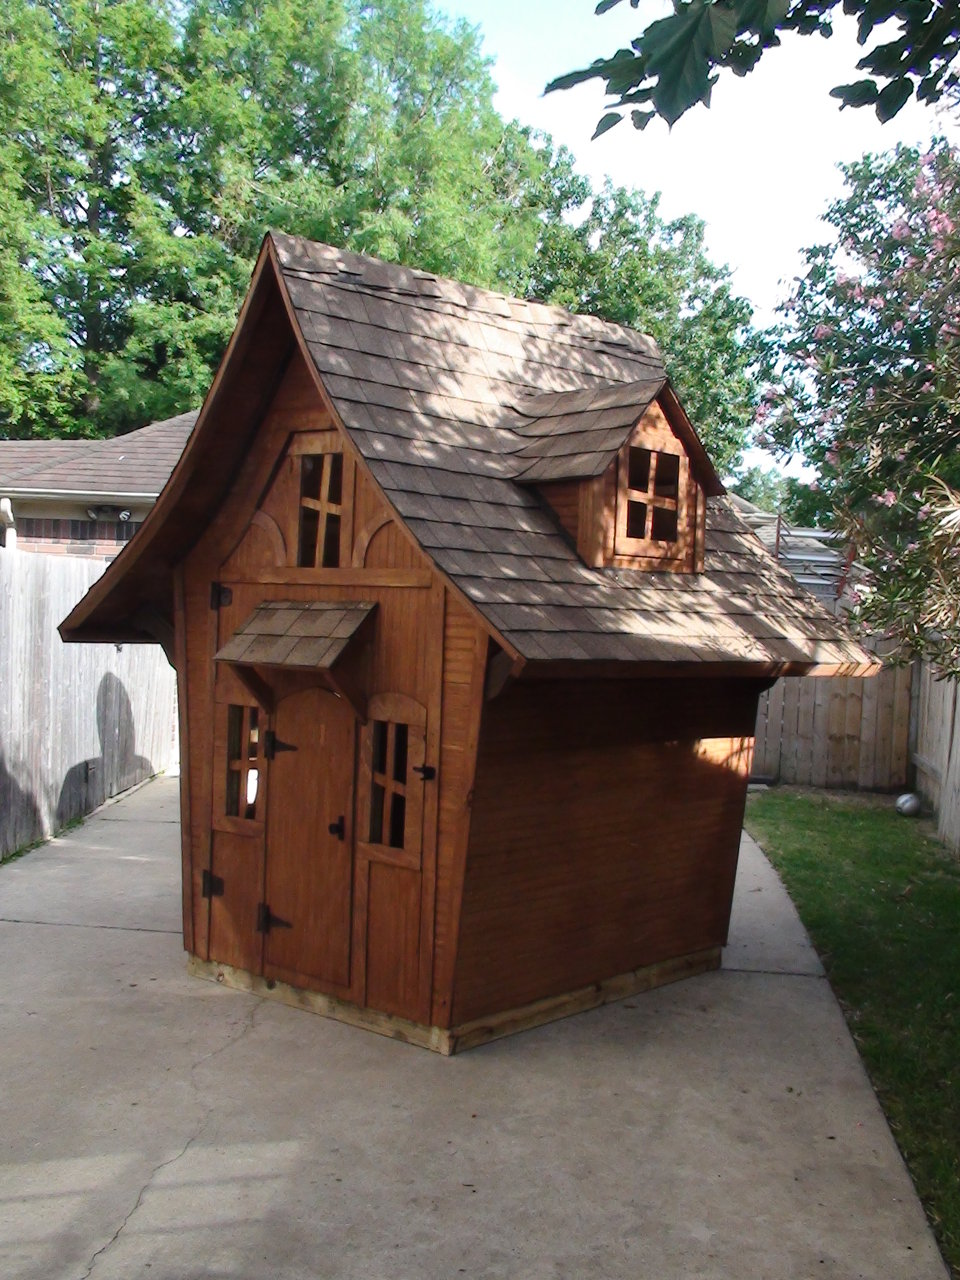 Storybook Cottage 2 - $3844